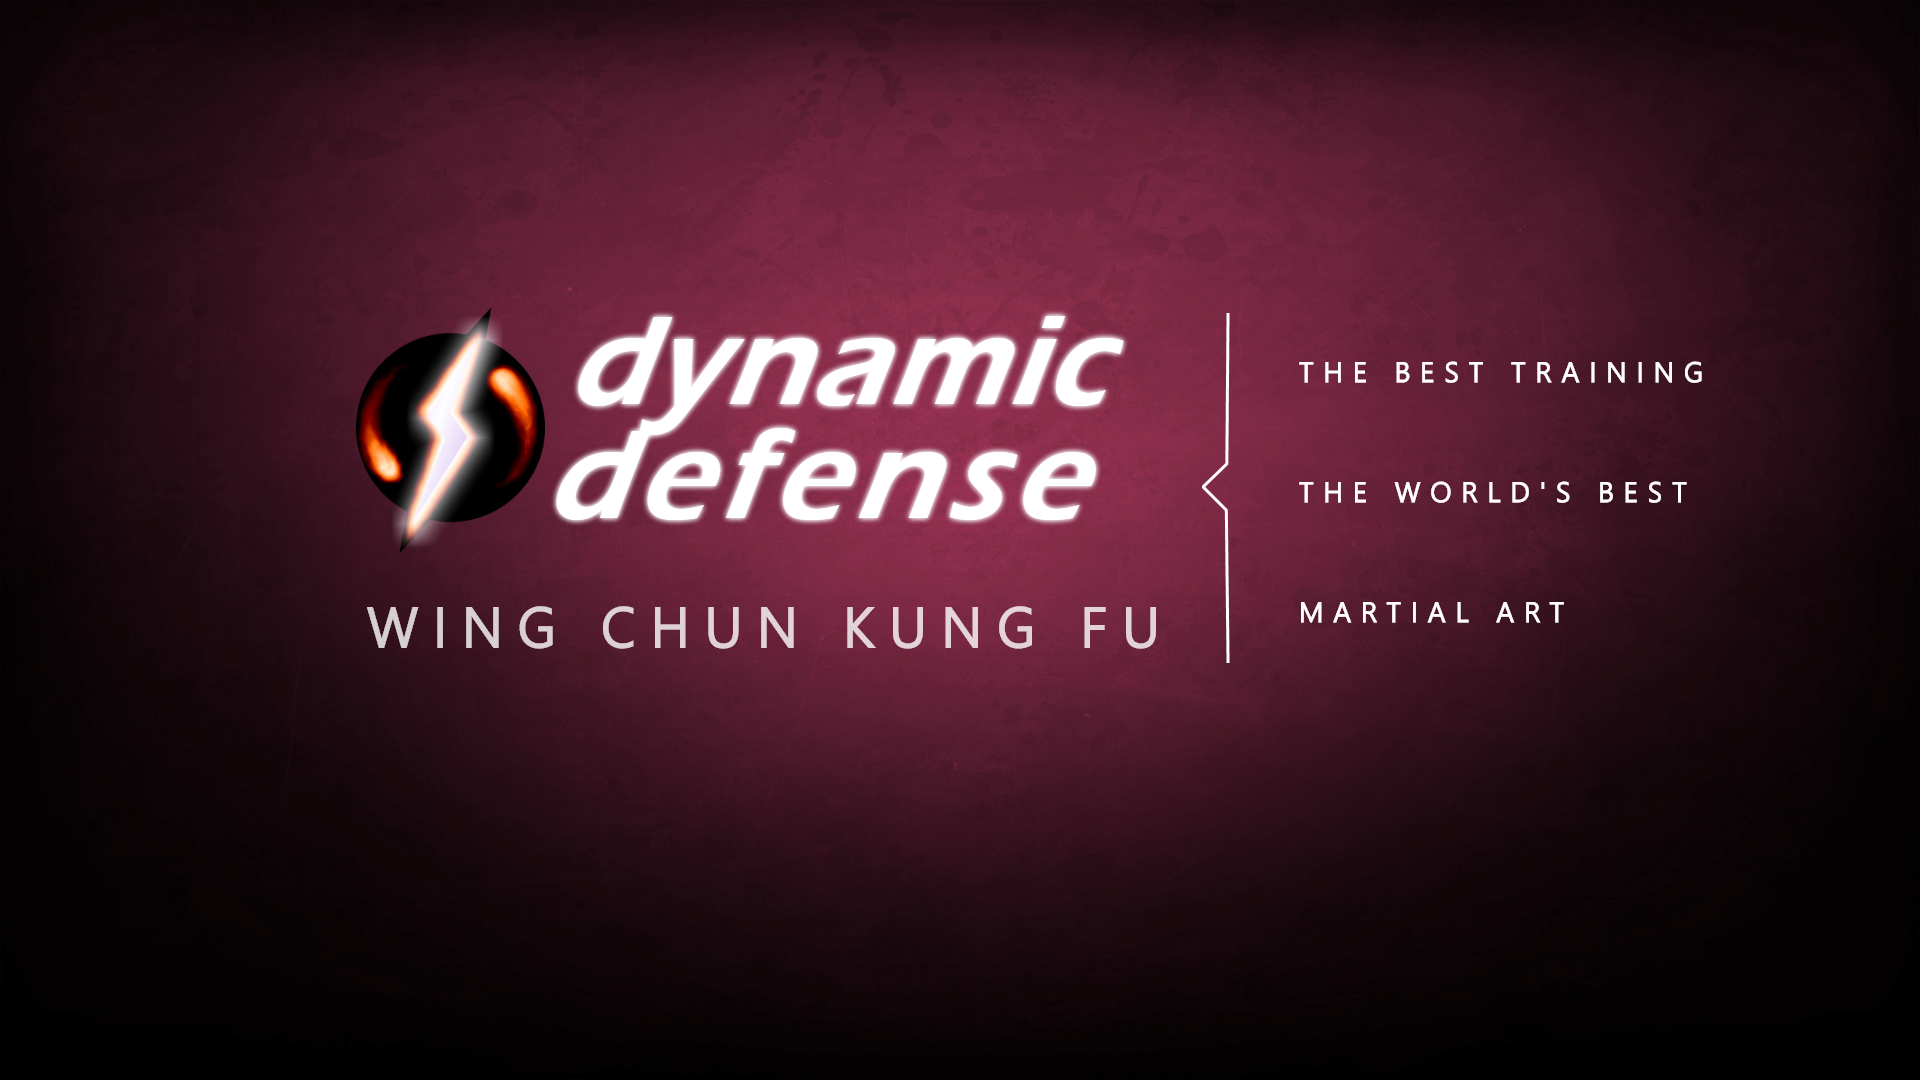 Dynamic Defense Wing Chun Kung Fu Academy